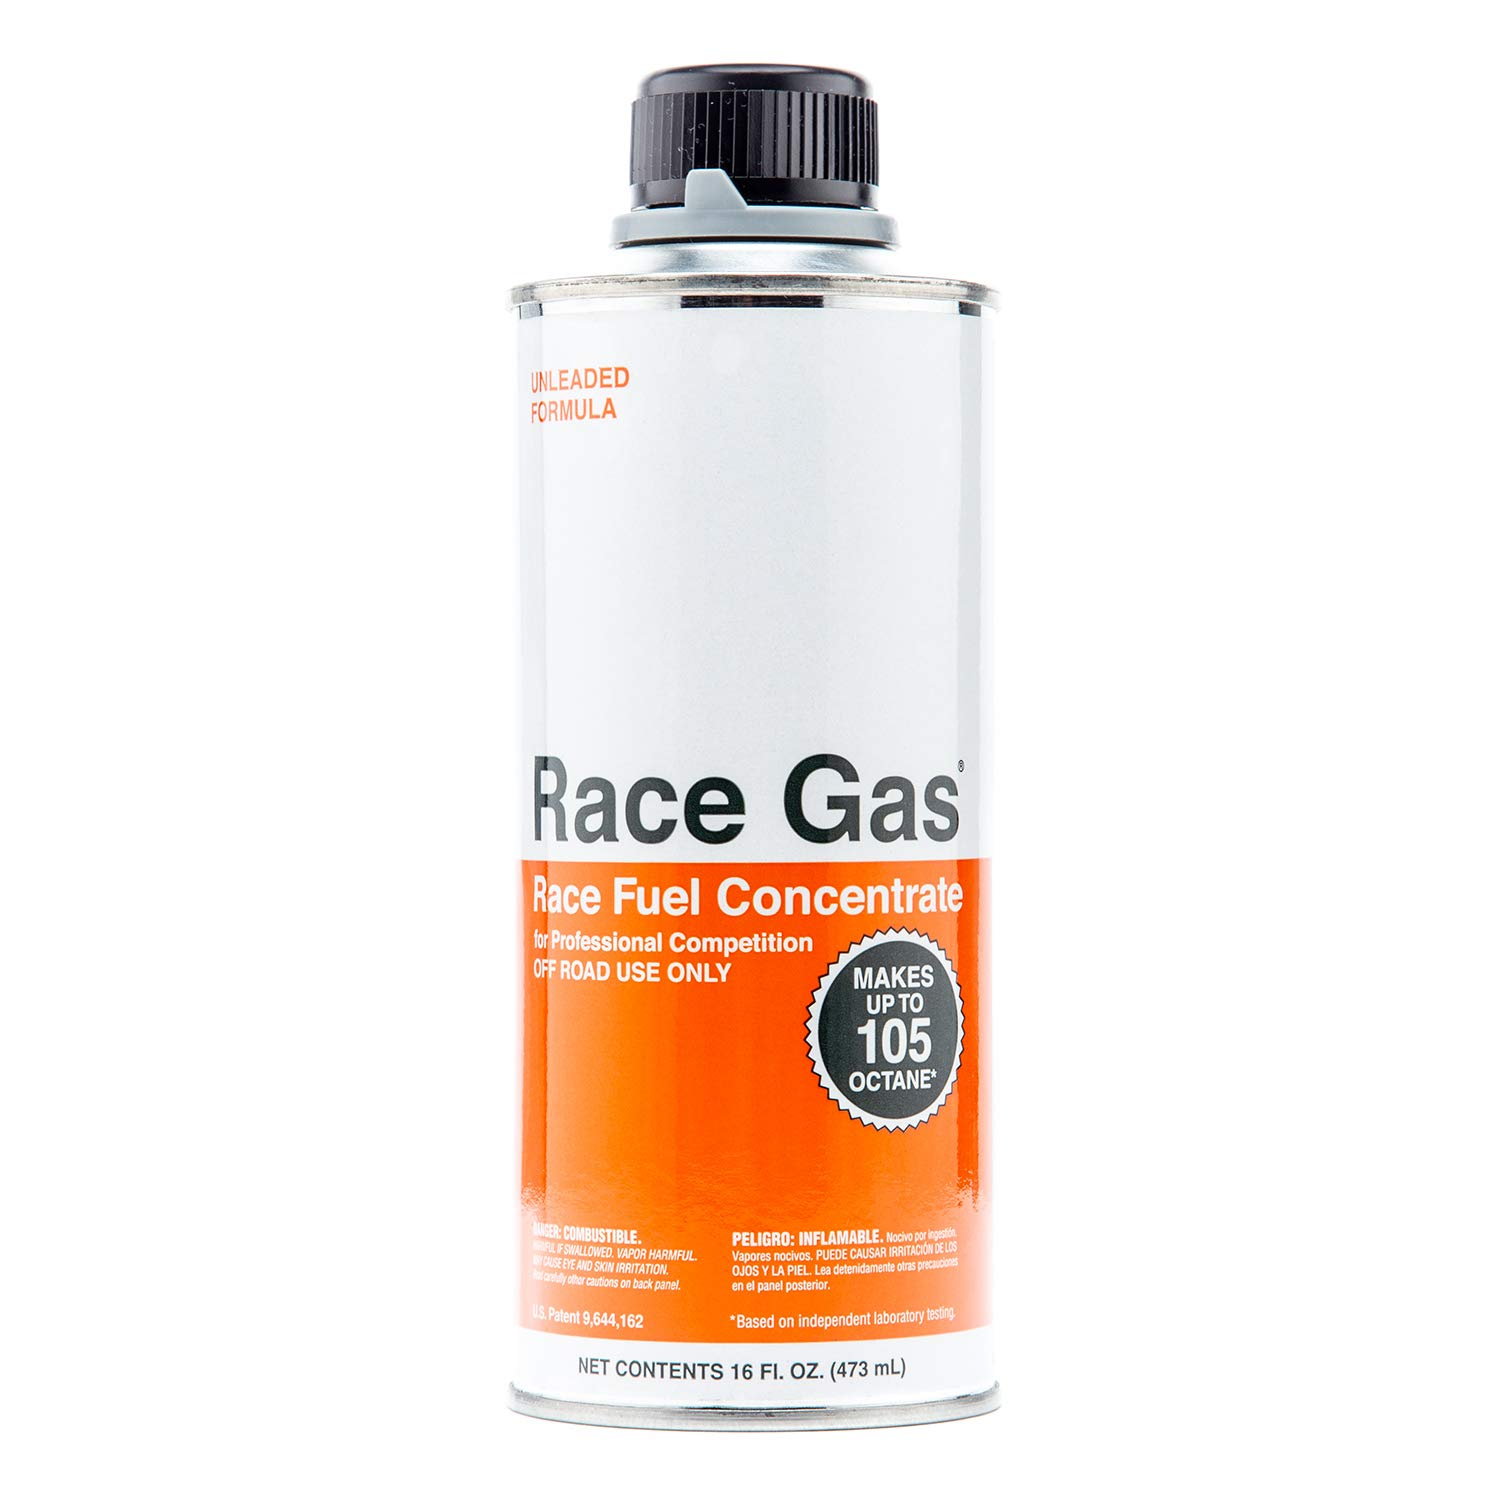 RaceGas 100016 Premium Race Fuel Concentrate Increases Gasoline Up to 105 Octan, 6 Pack by RaceGas